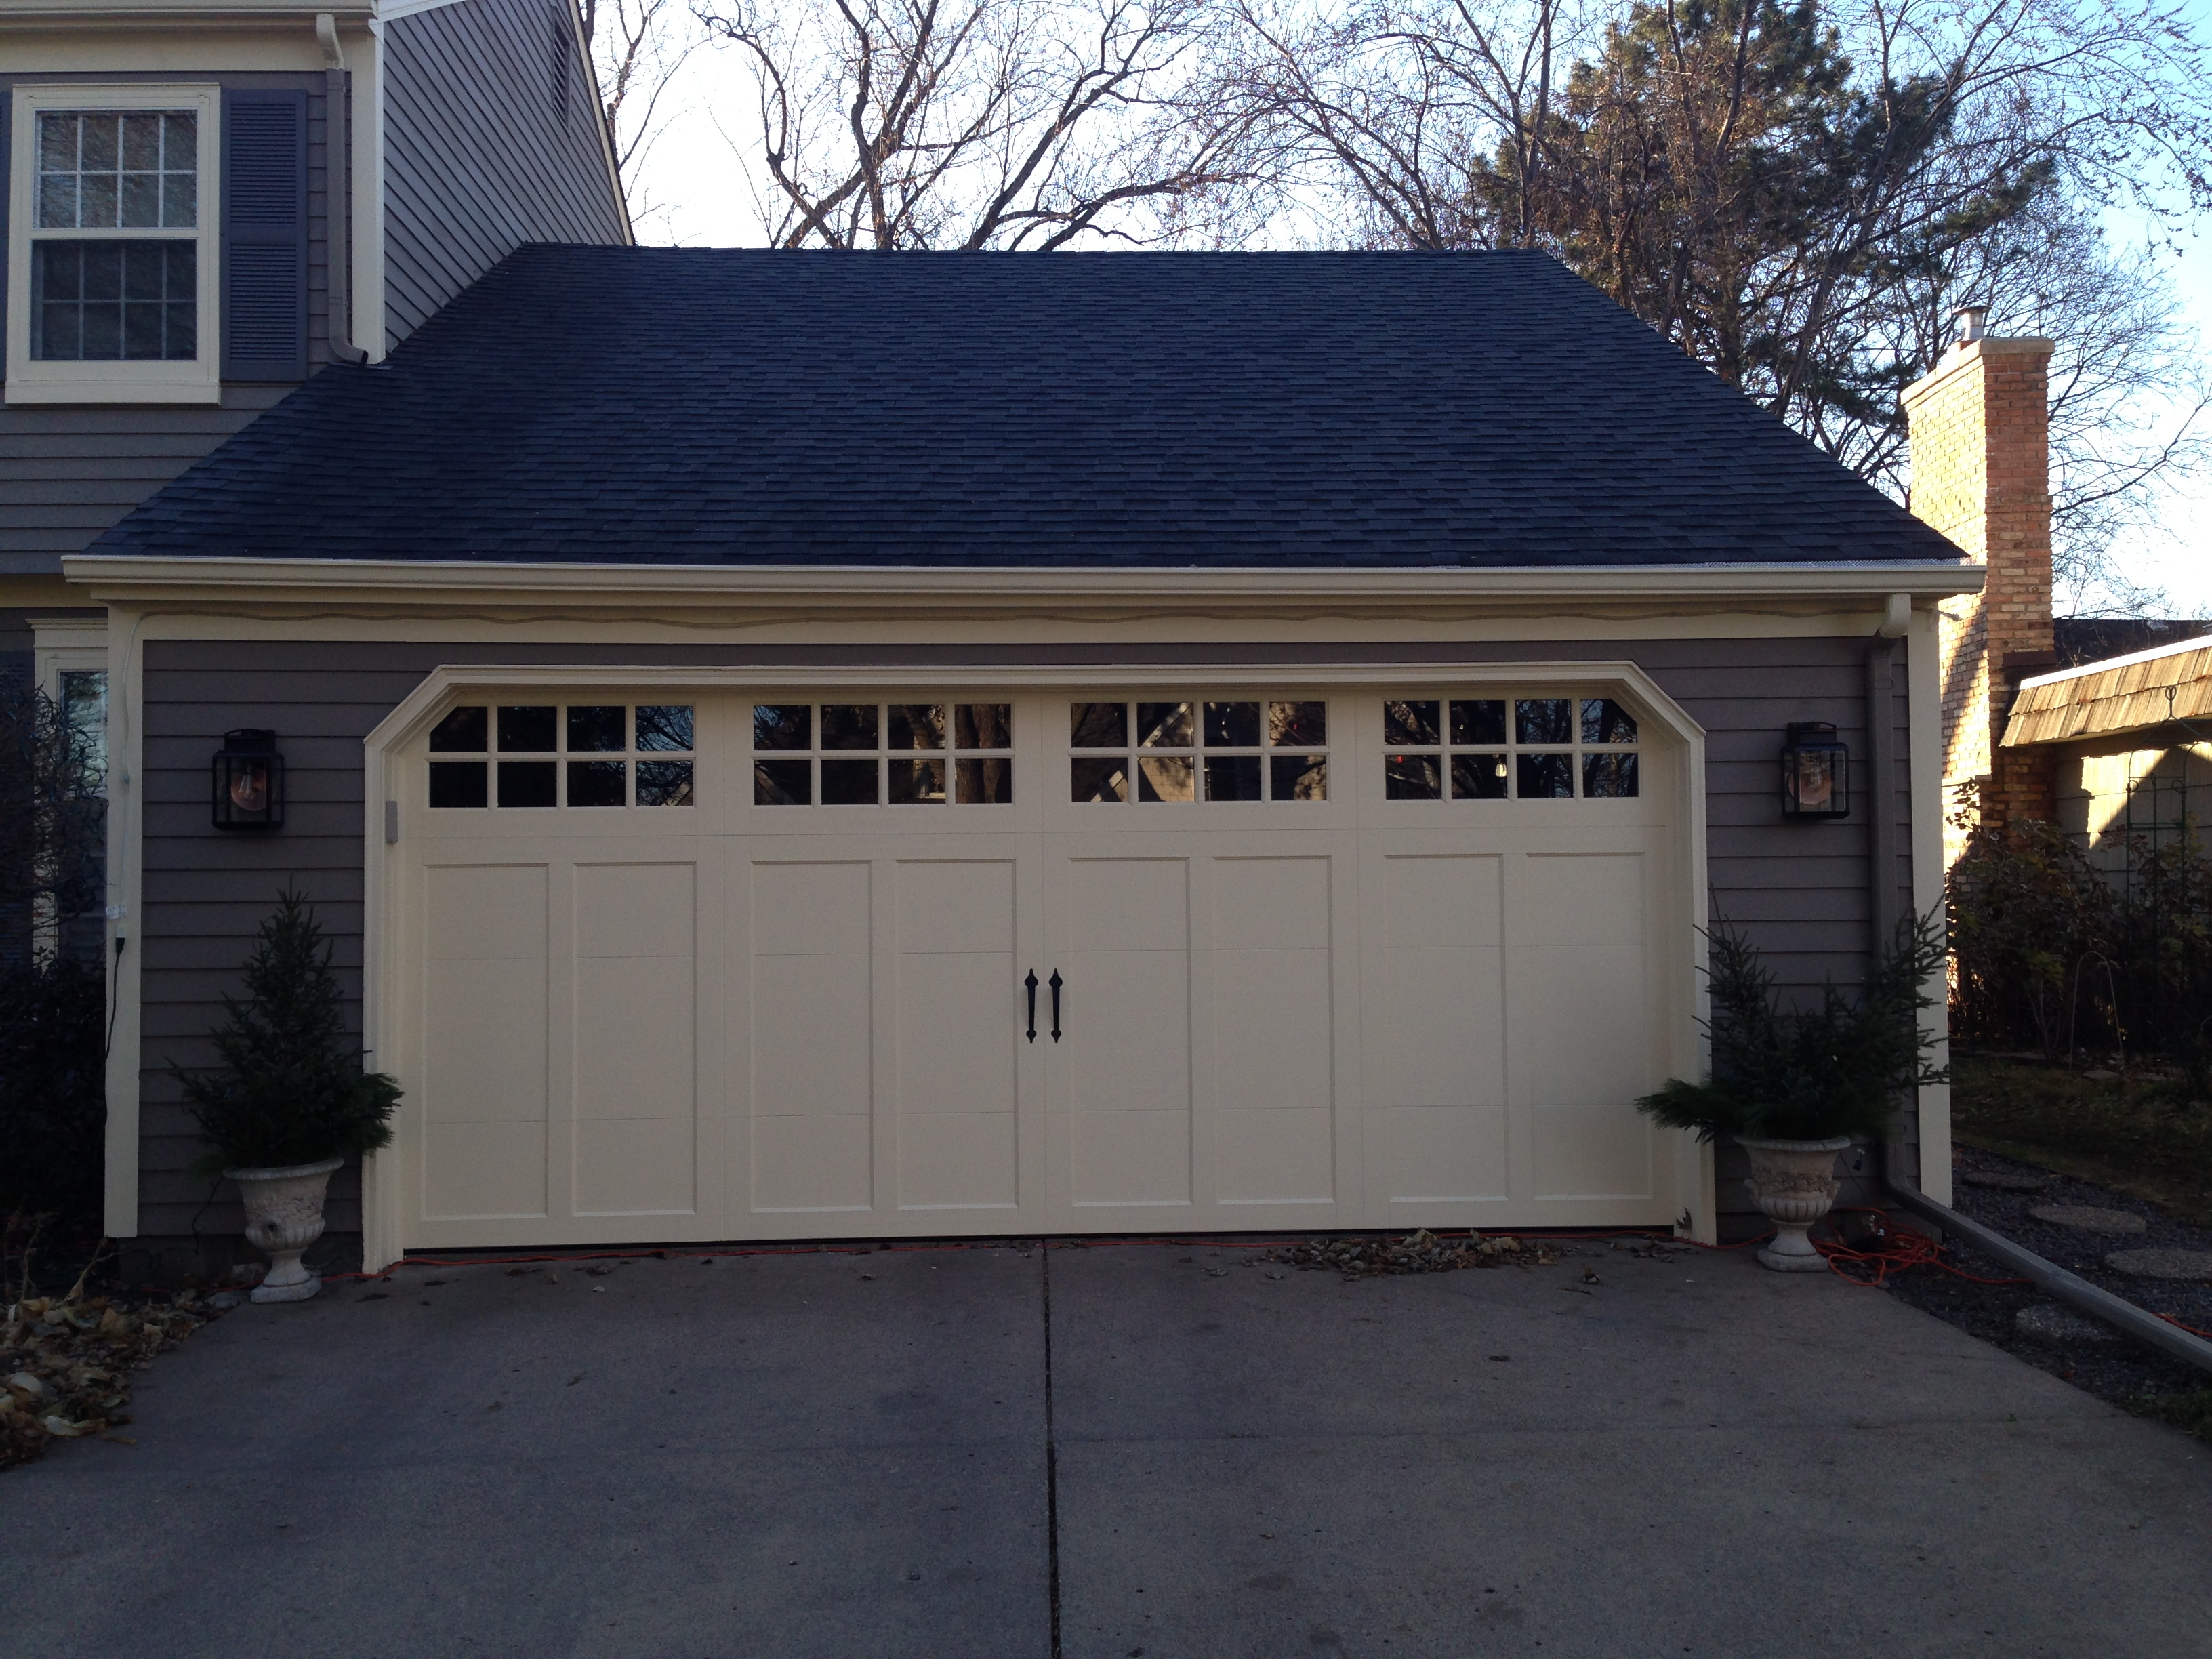 Charmant Garage Door Installation U0026 Repair: Maple Grove, MN